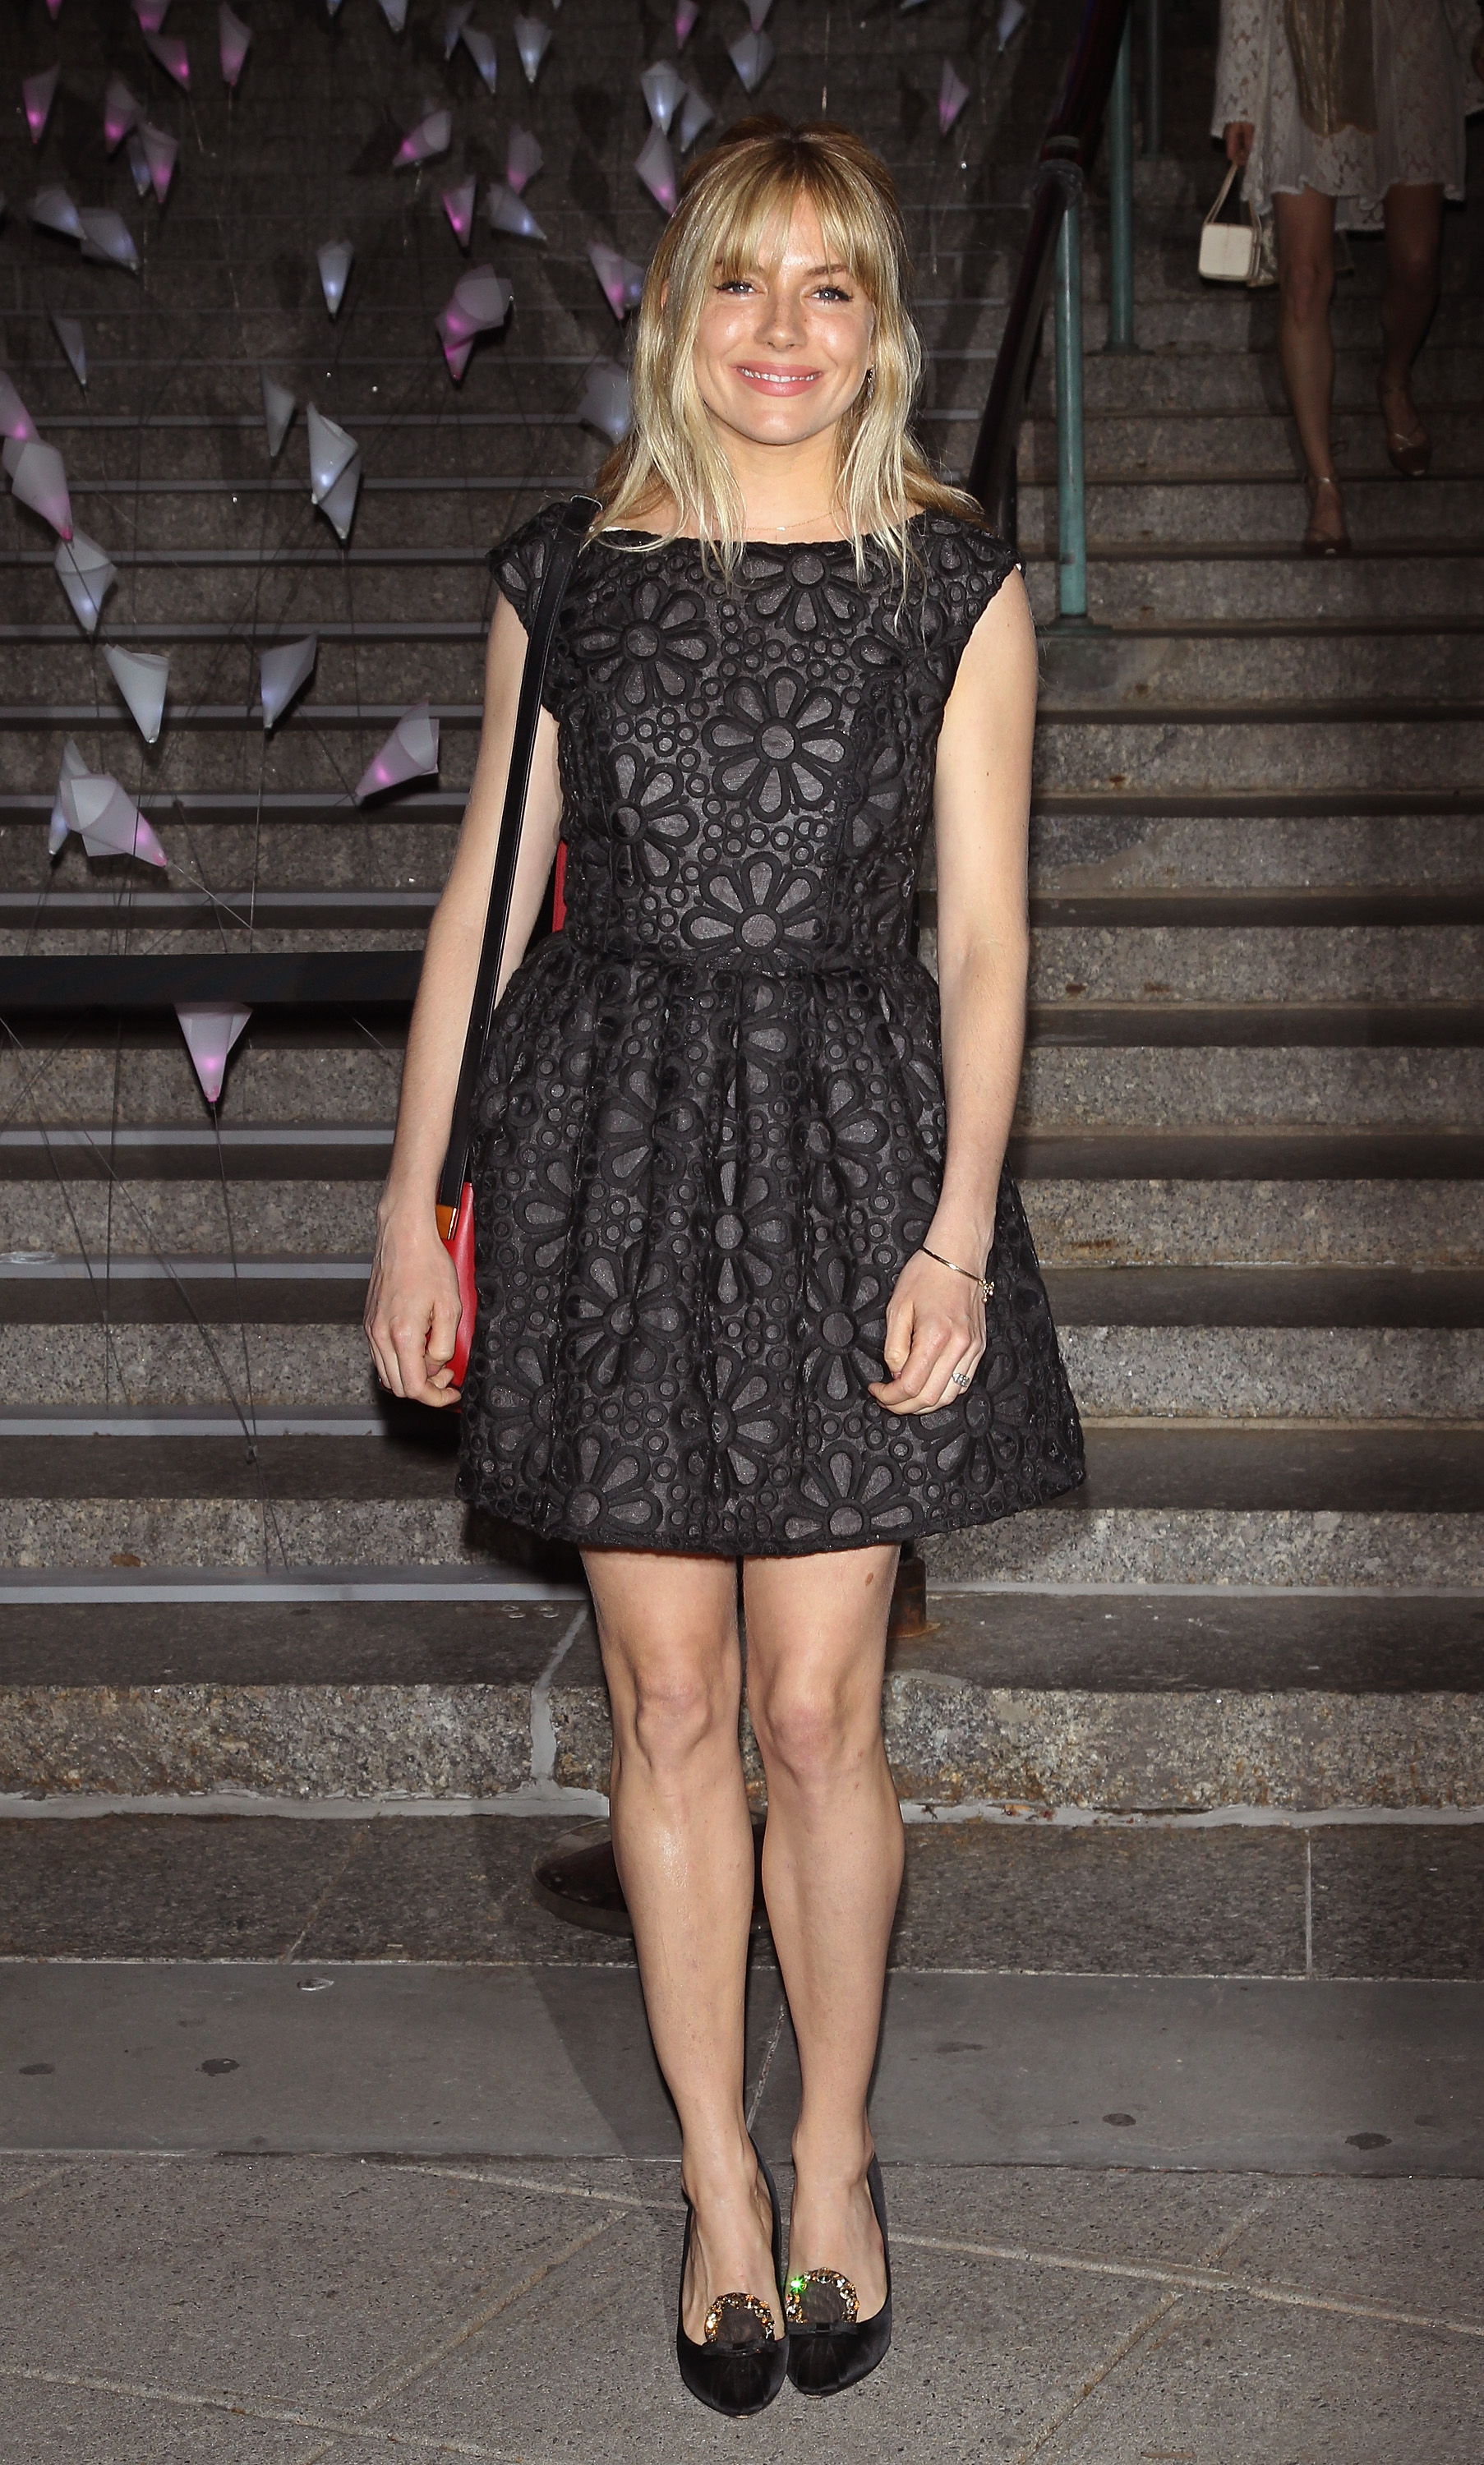 Sienna Miller wore a black dress to Vanity Fair's Tribeca Film Festival